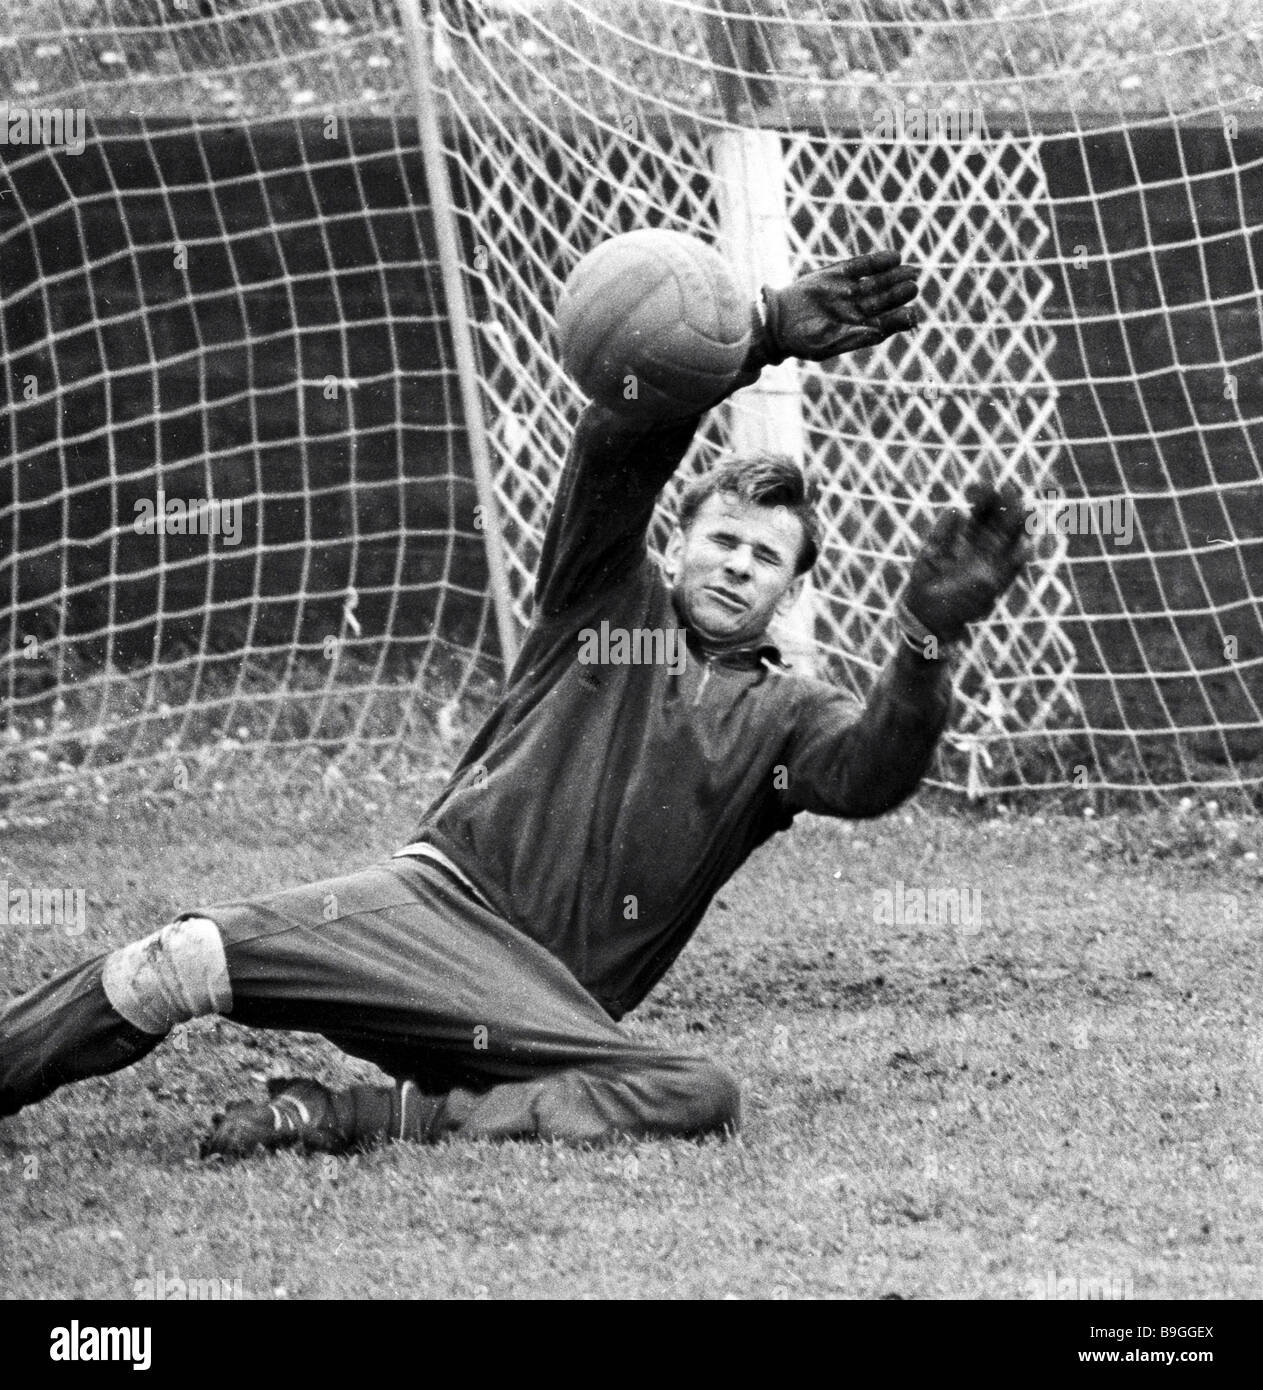 Lev Yashin Dynamo Moscow goalkeeper training Stock Royalty